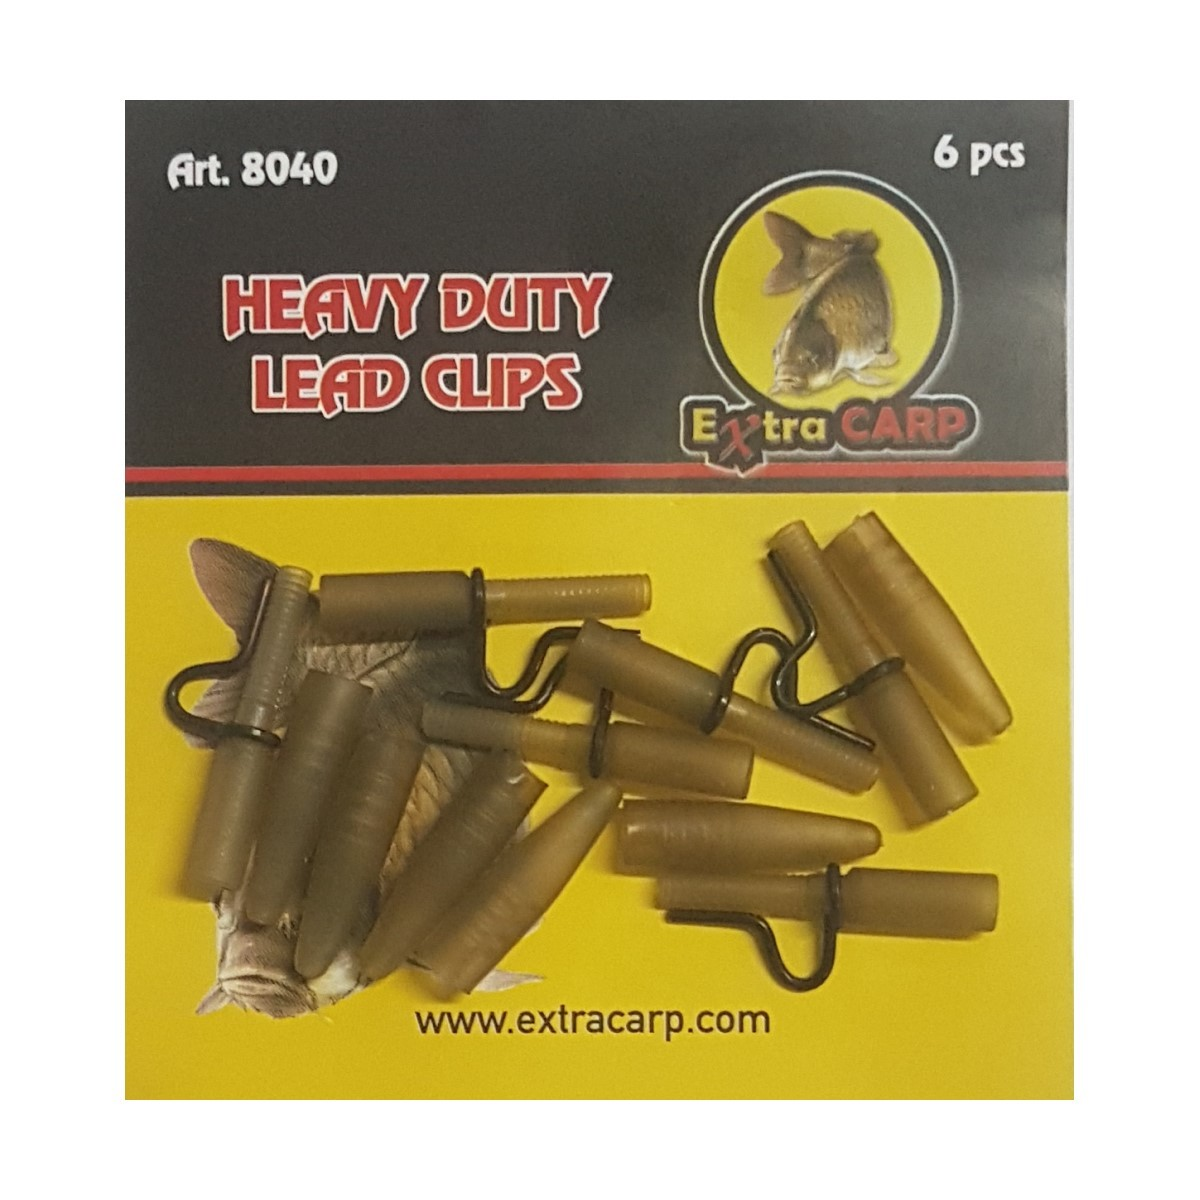 Клипс за олово Extra Carp Heavy Duty Lead Clips